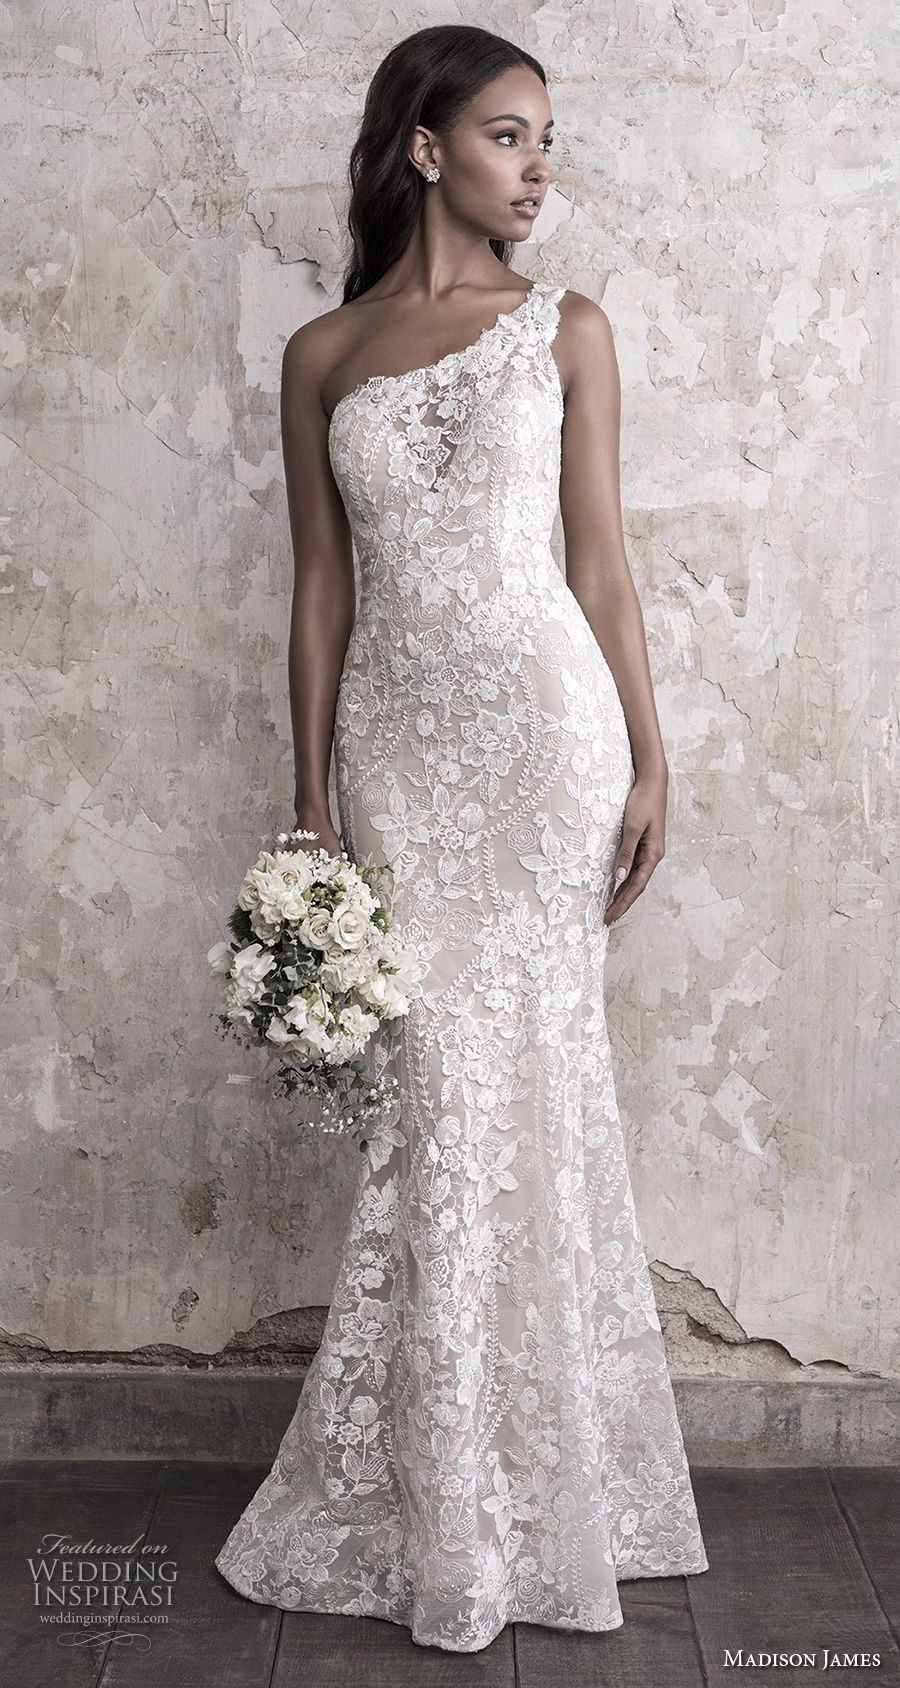 madison james fall 2018 bridal sleeveless one shoulder full embellishment elegant fit and flare wedding dress chapel train (10) mv